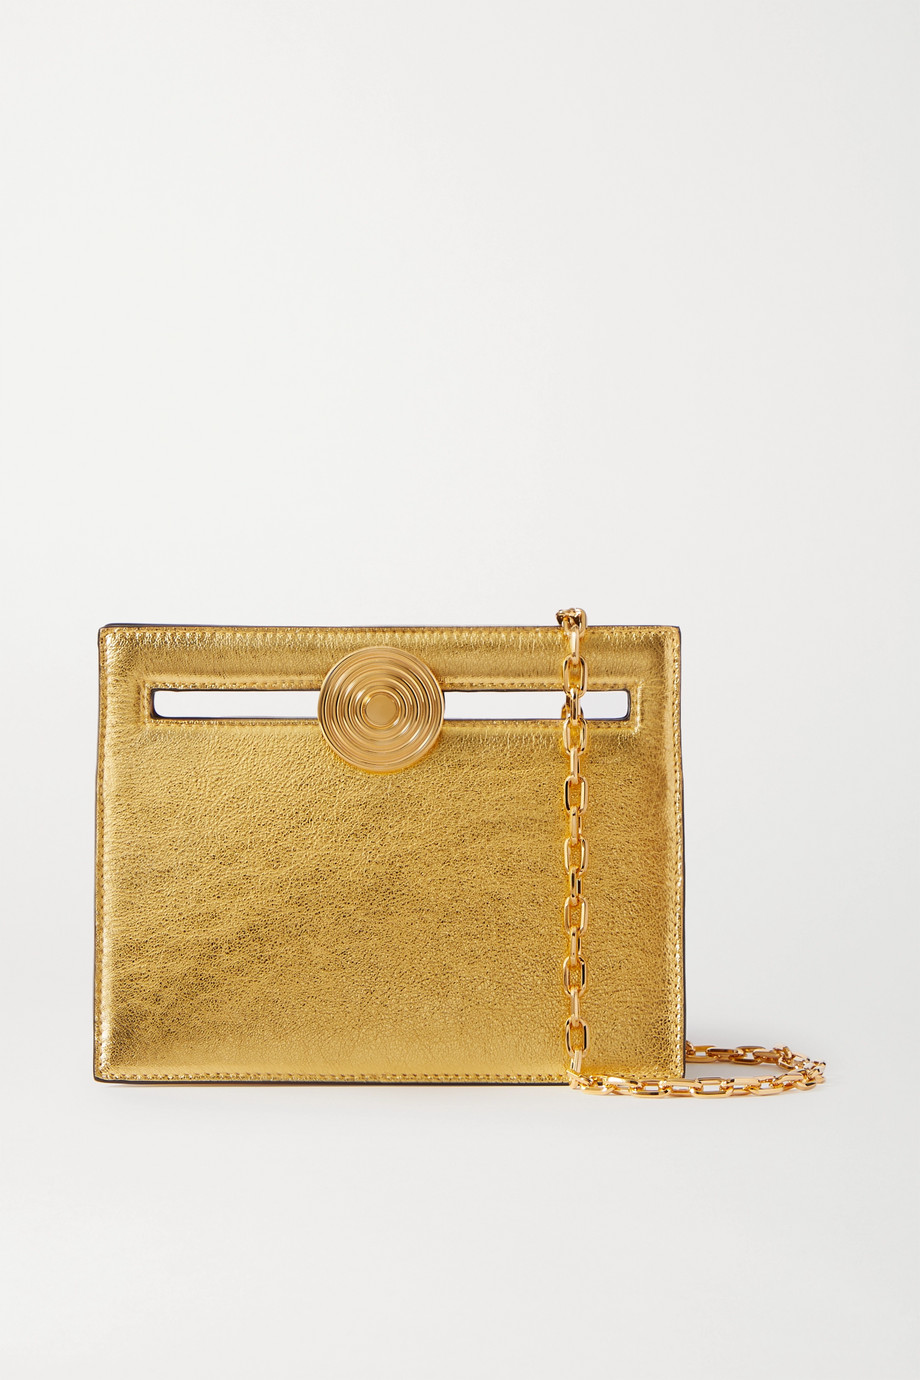 Bienen-Davis Max mini metallic leather clutch